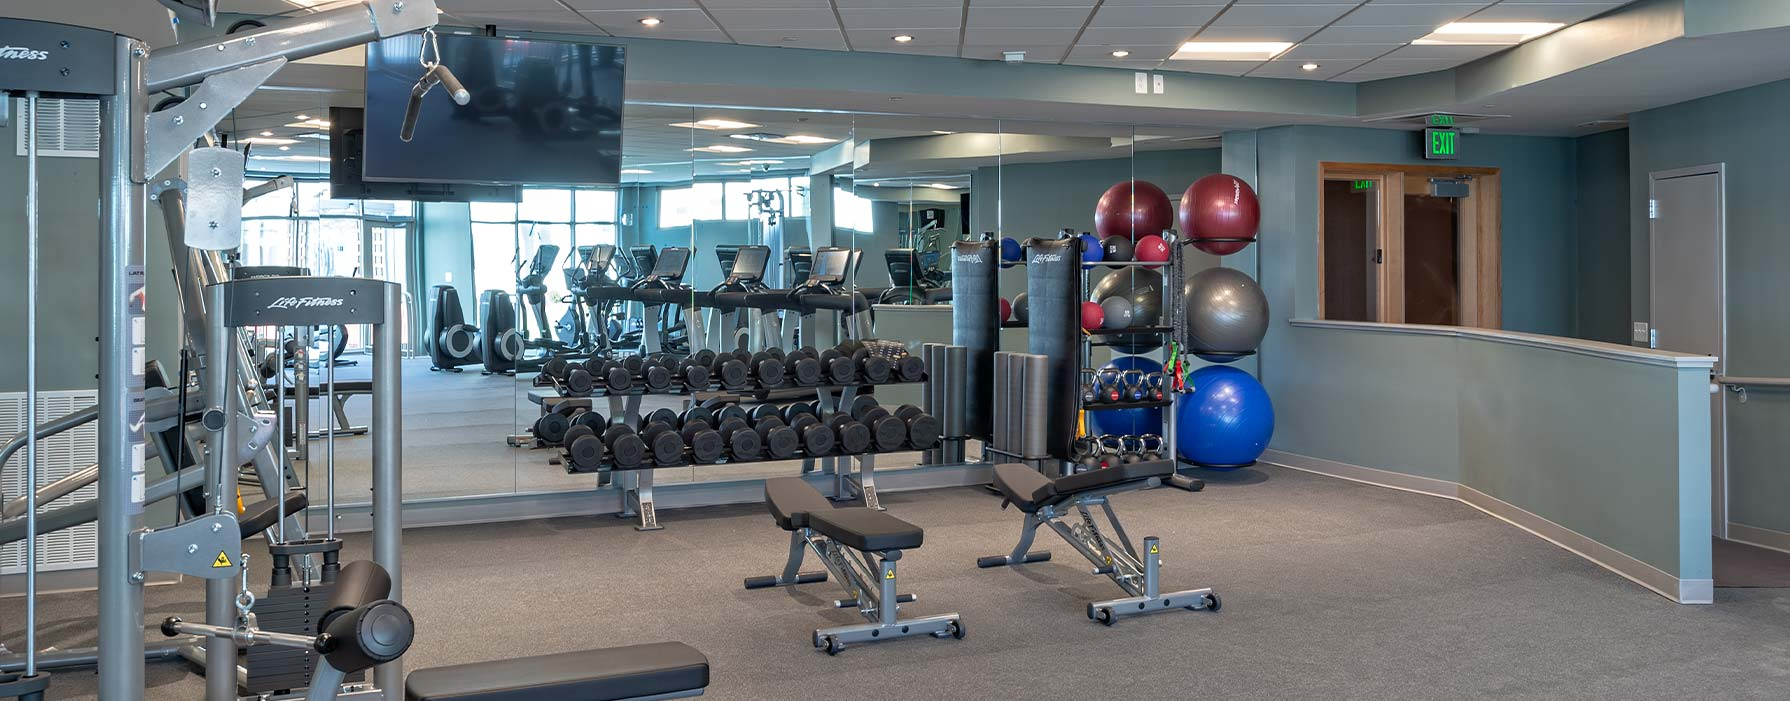 One Ardmore Apartment Homes - Ardmore, PA - Fitness Center